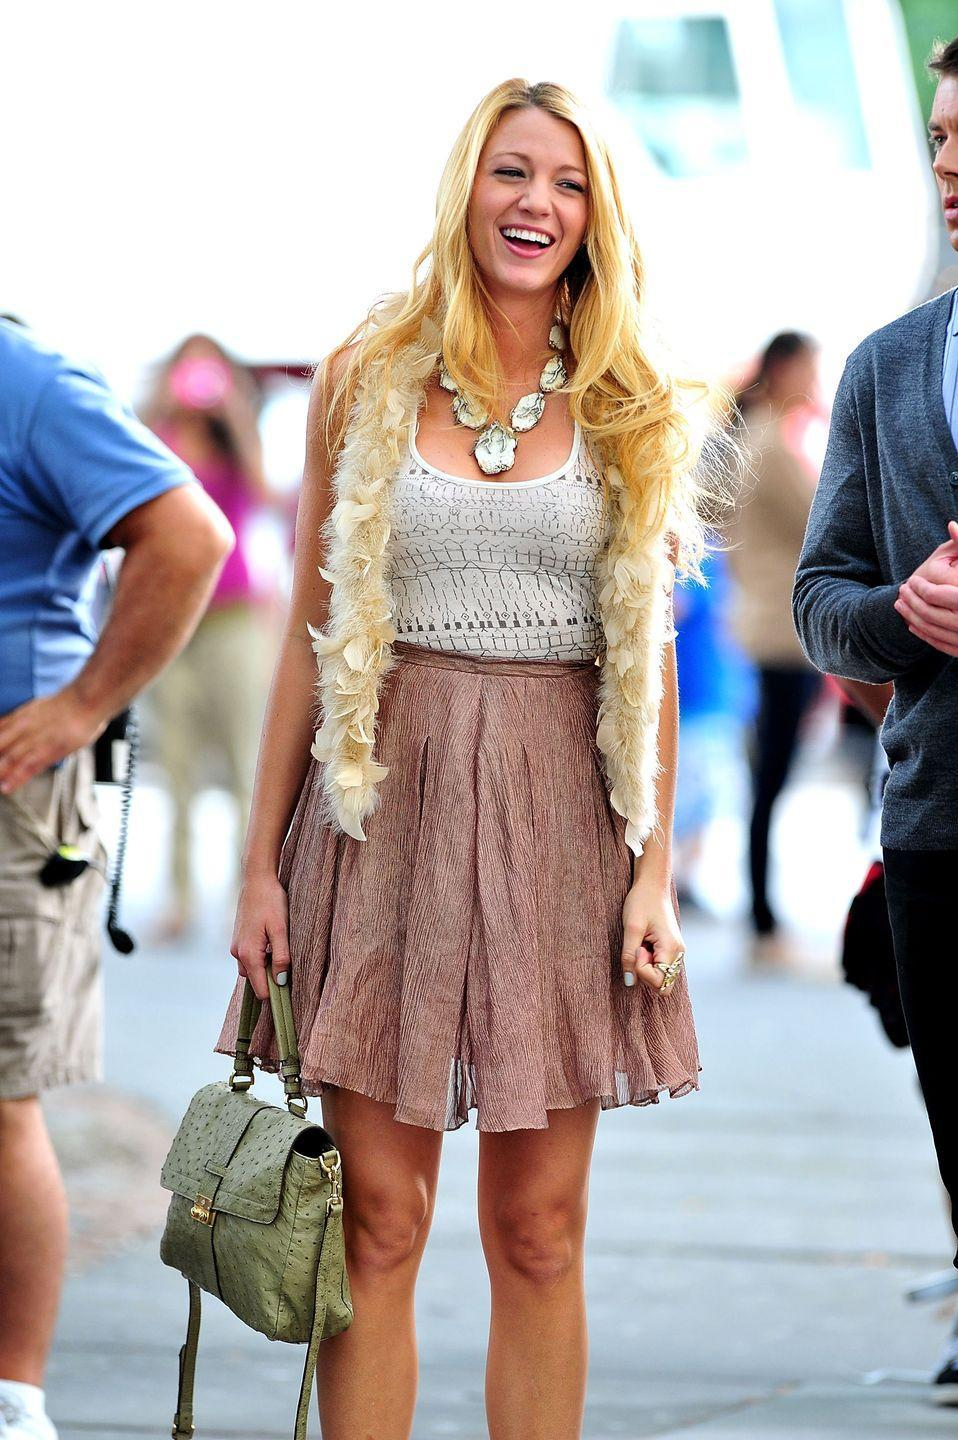 <p>While filming on location in New York City for <em>Gossip Girl</em>, viewers often got a sneak peek of Blake Lively's trendsetting wardrobe on the show.</p>